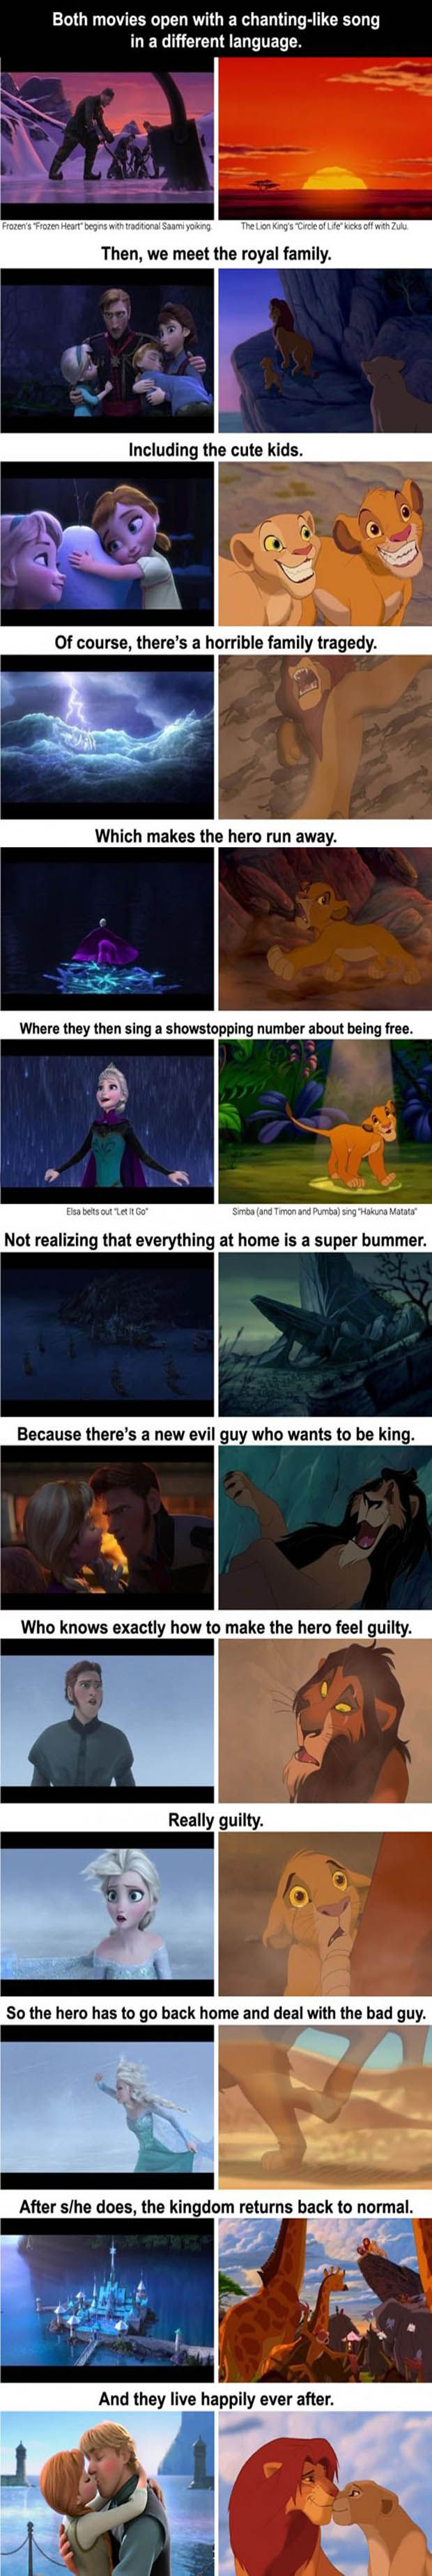 Frozen and Lion King